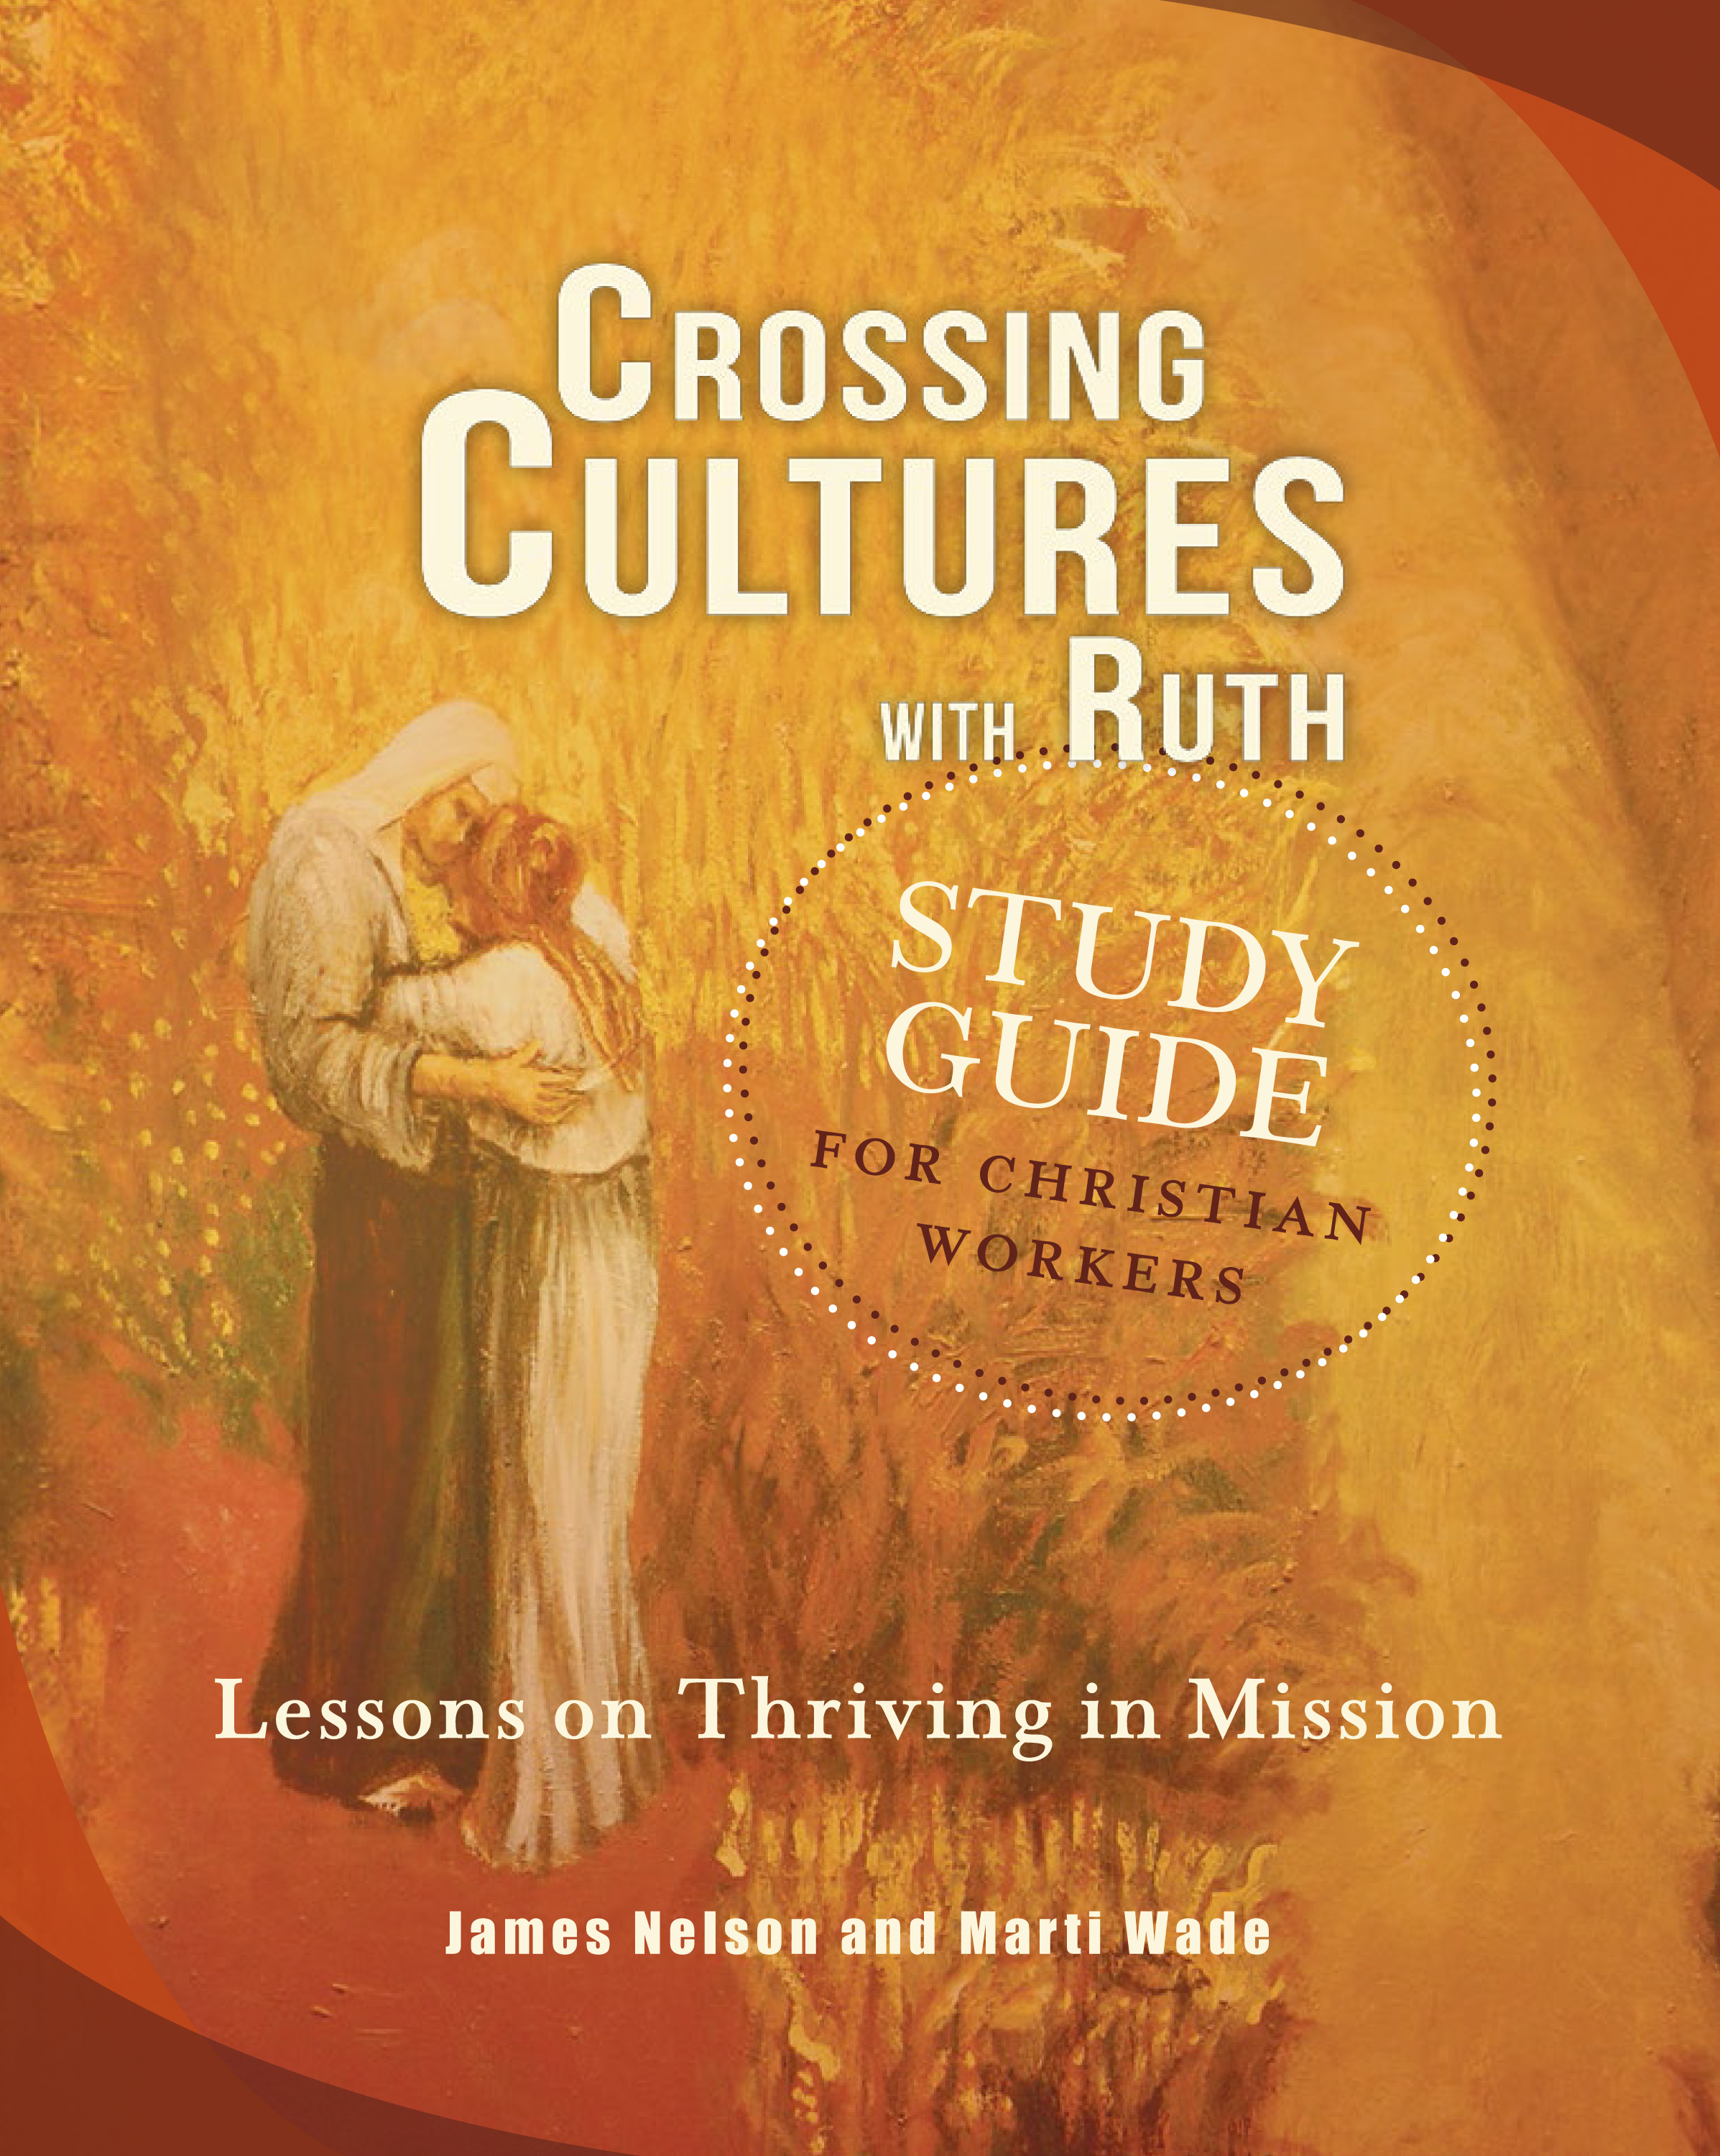 Crossing Cultures with Ruth STUDY GUIDE for Christian Workers